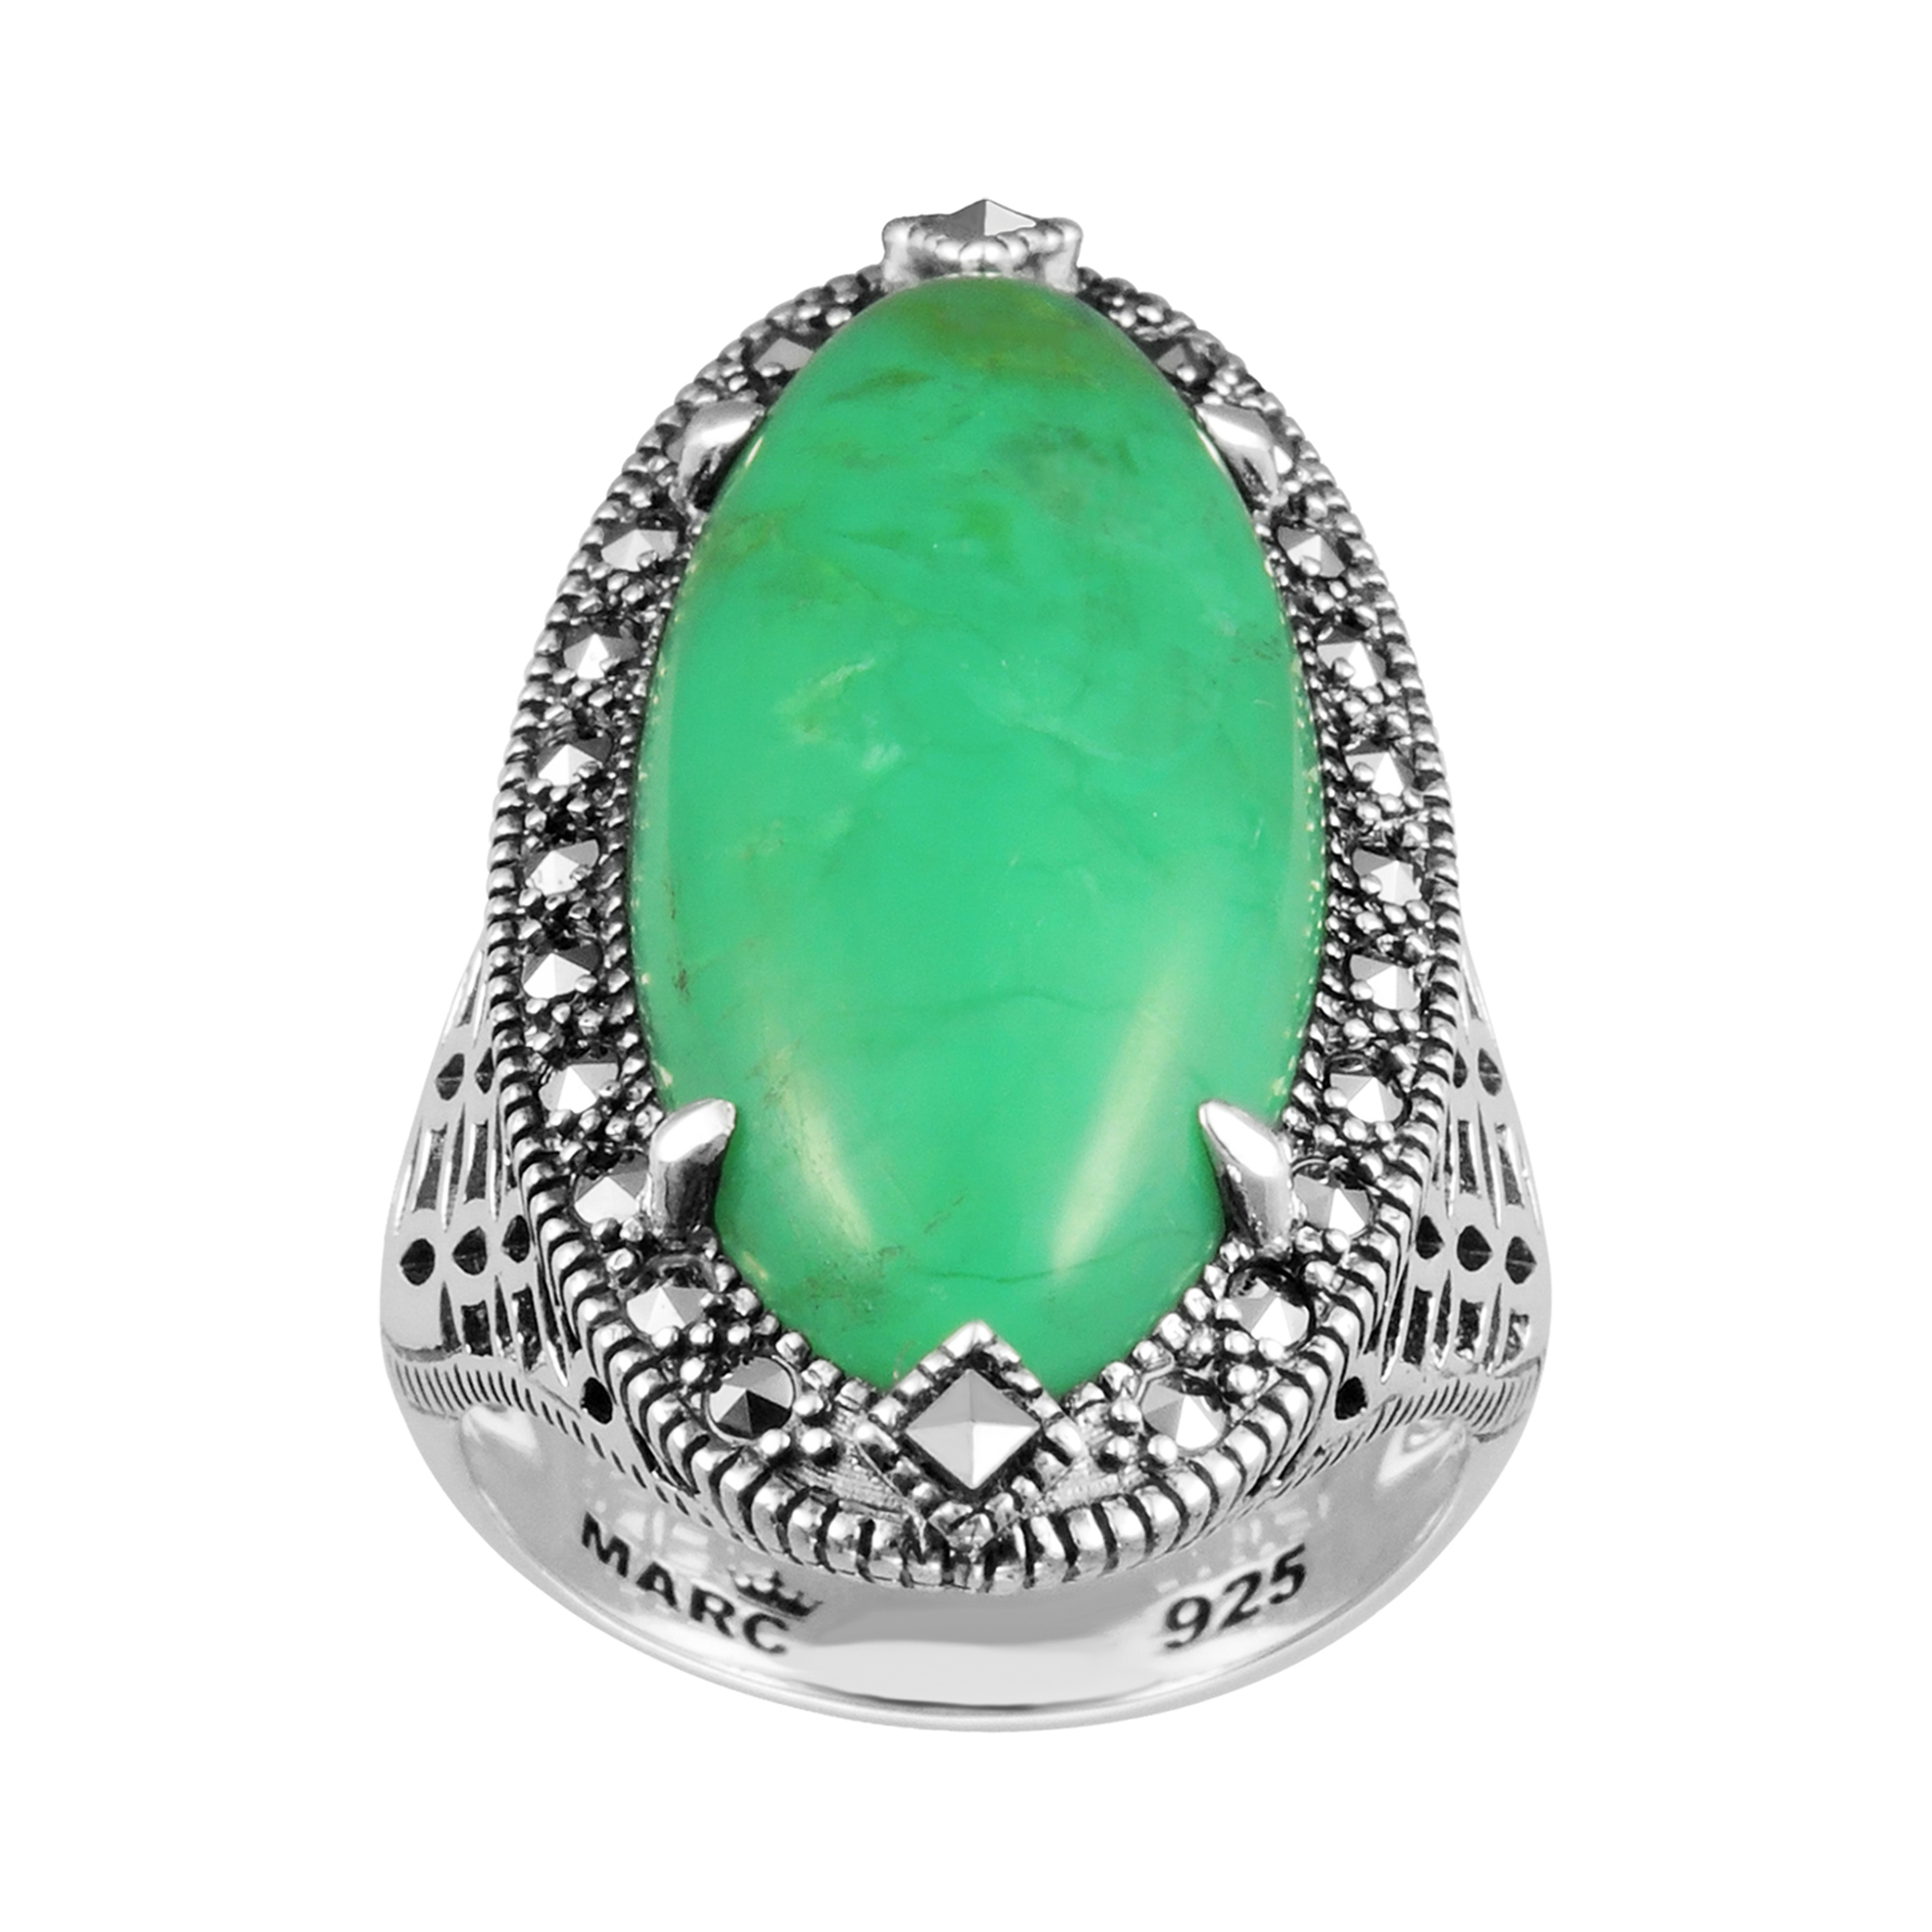 MARC Sterling Silver & Swarovski Marcasite Ring Set With Chrysoprase by TJM